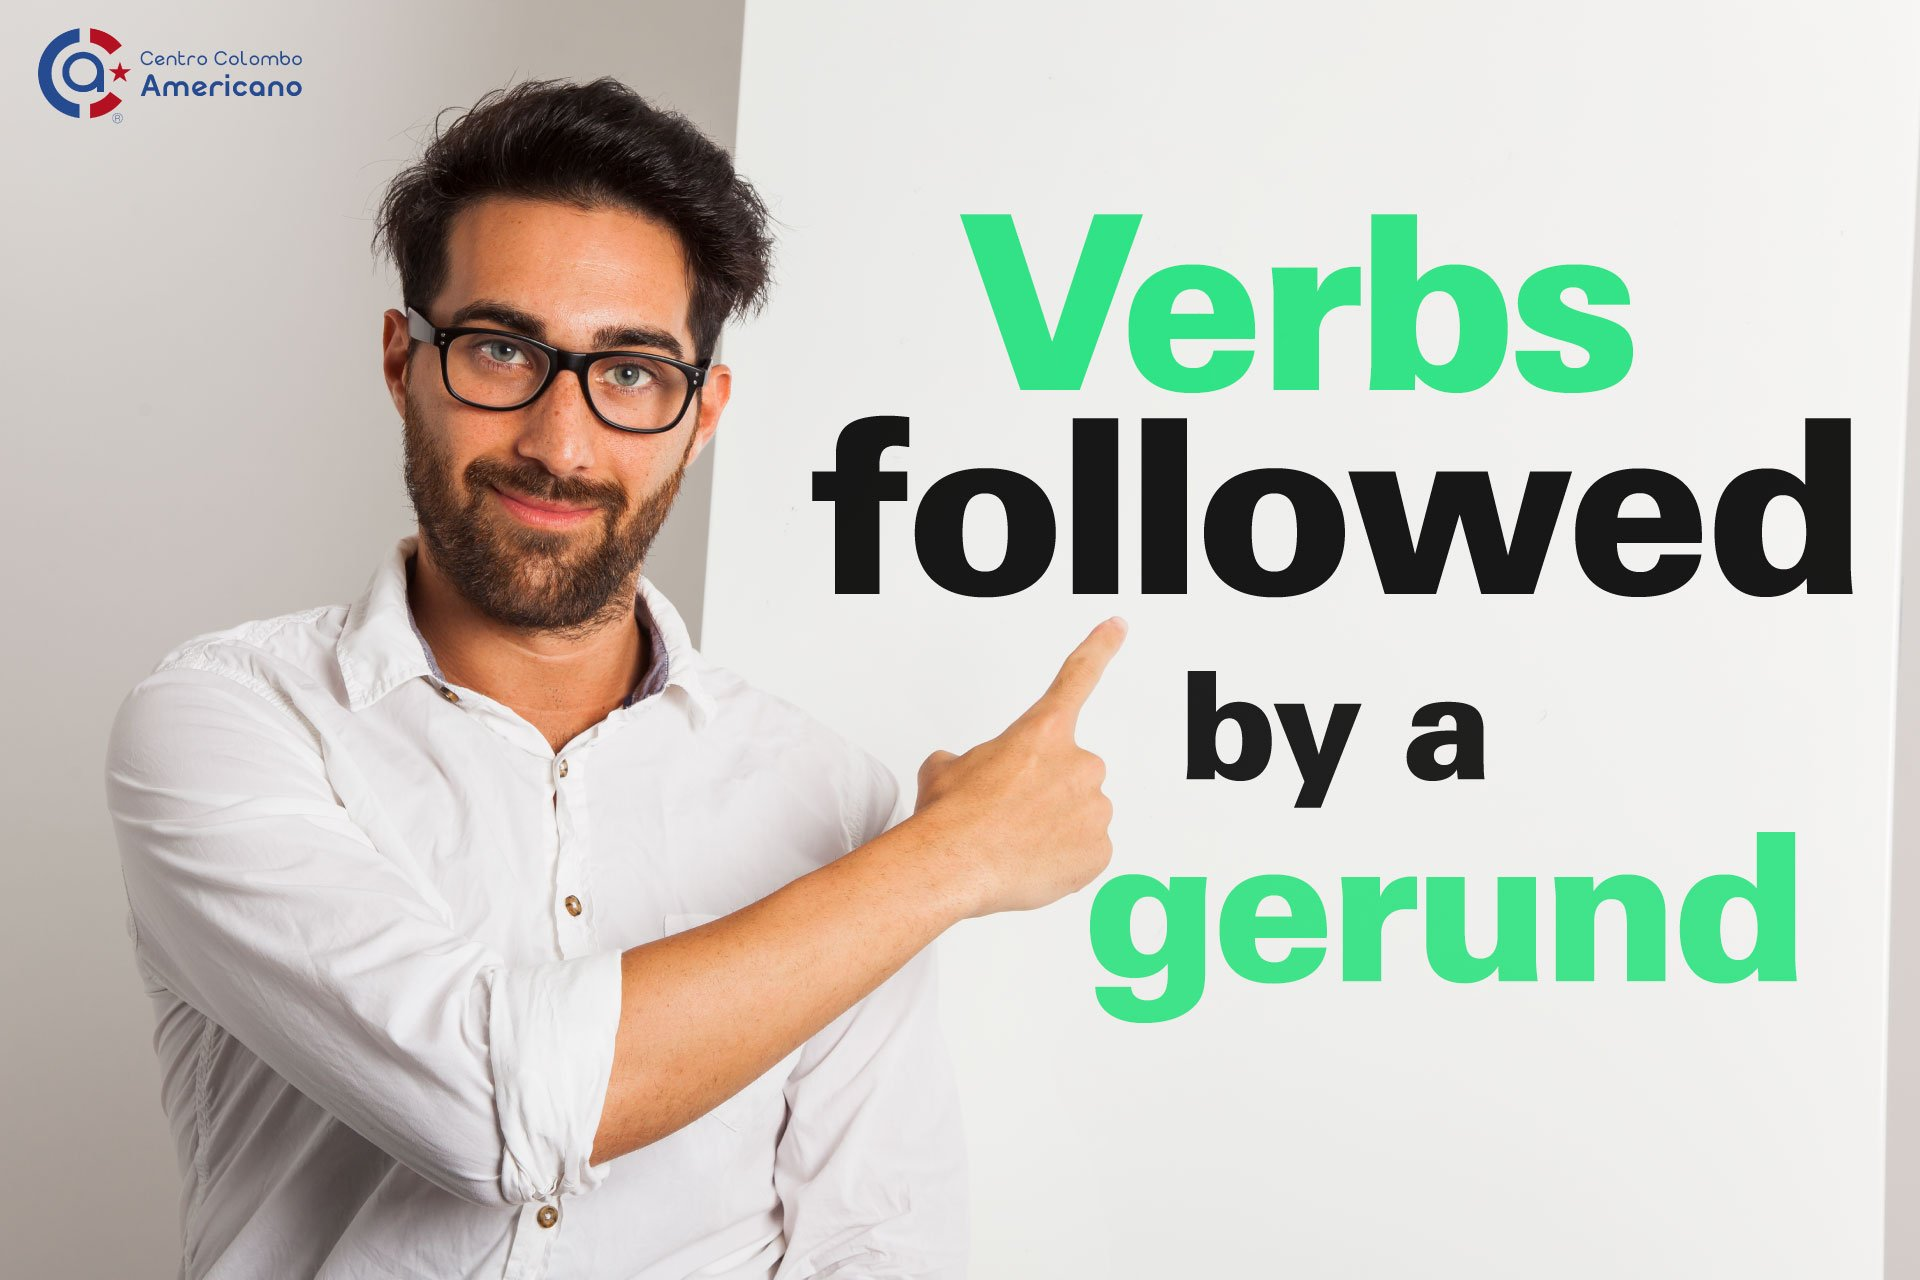 Verbs Followed by a gerund